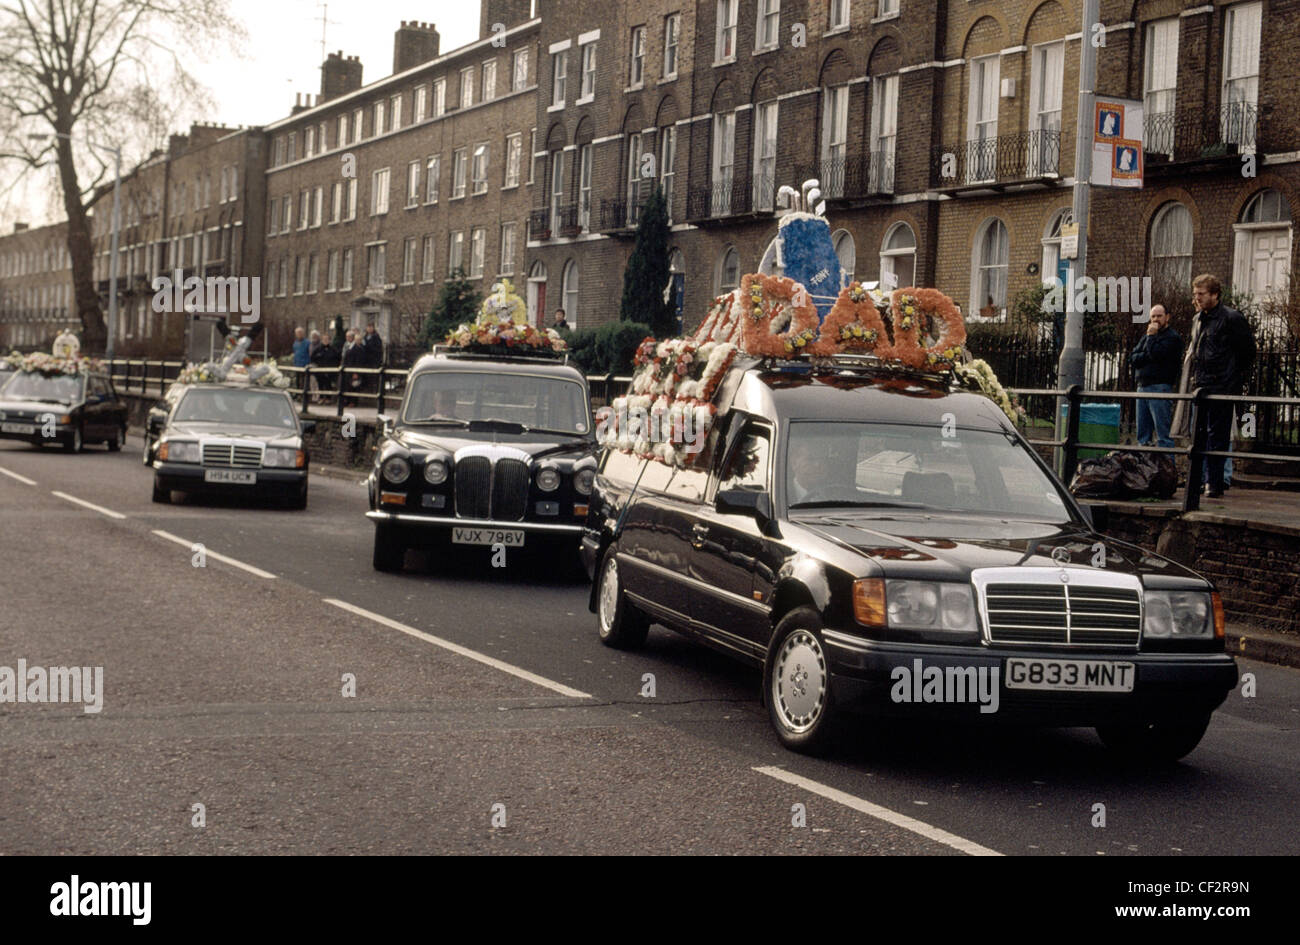 Funeral flowers dad stock photos funeral flowers dad stock images procession of funeral cars laden with flowers on the roof follow the hearse to the cemetery izmirmasajfo